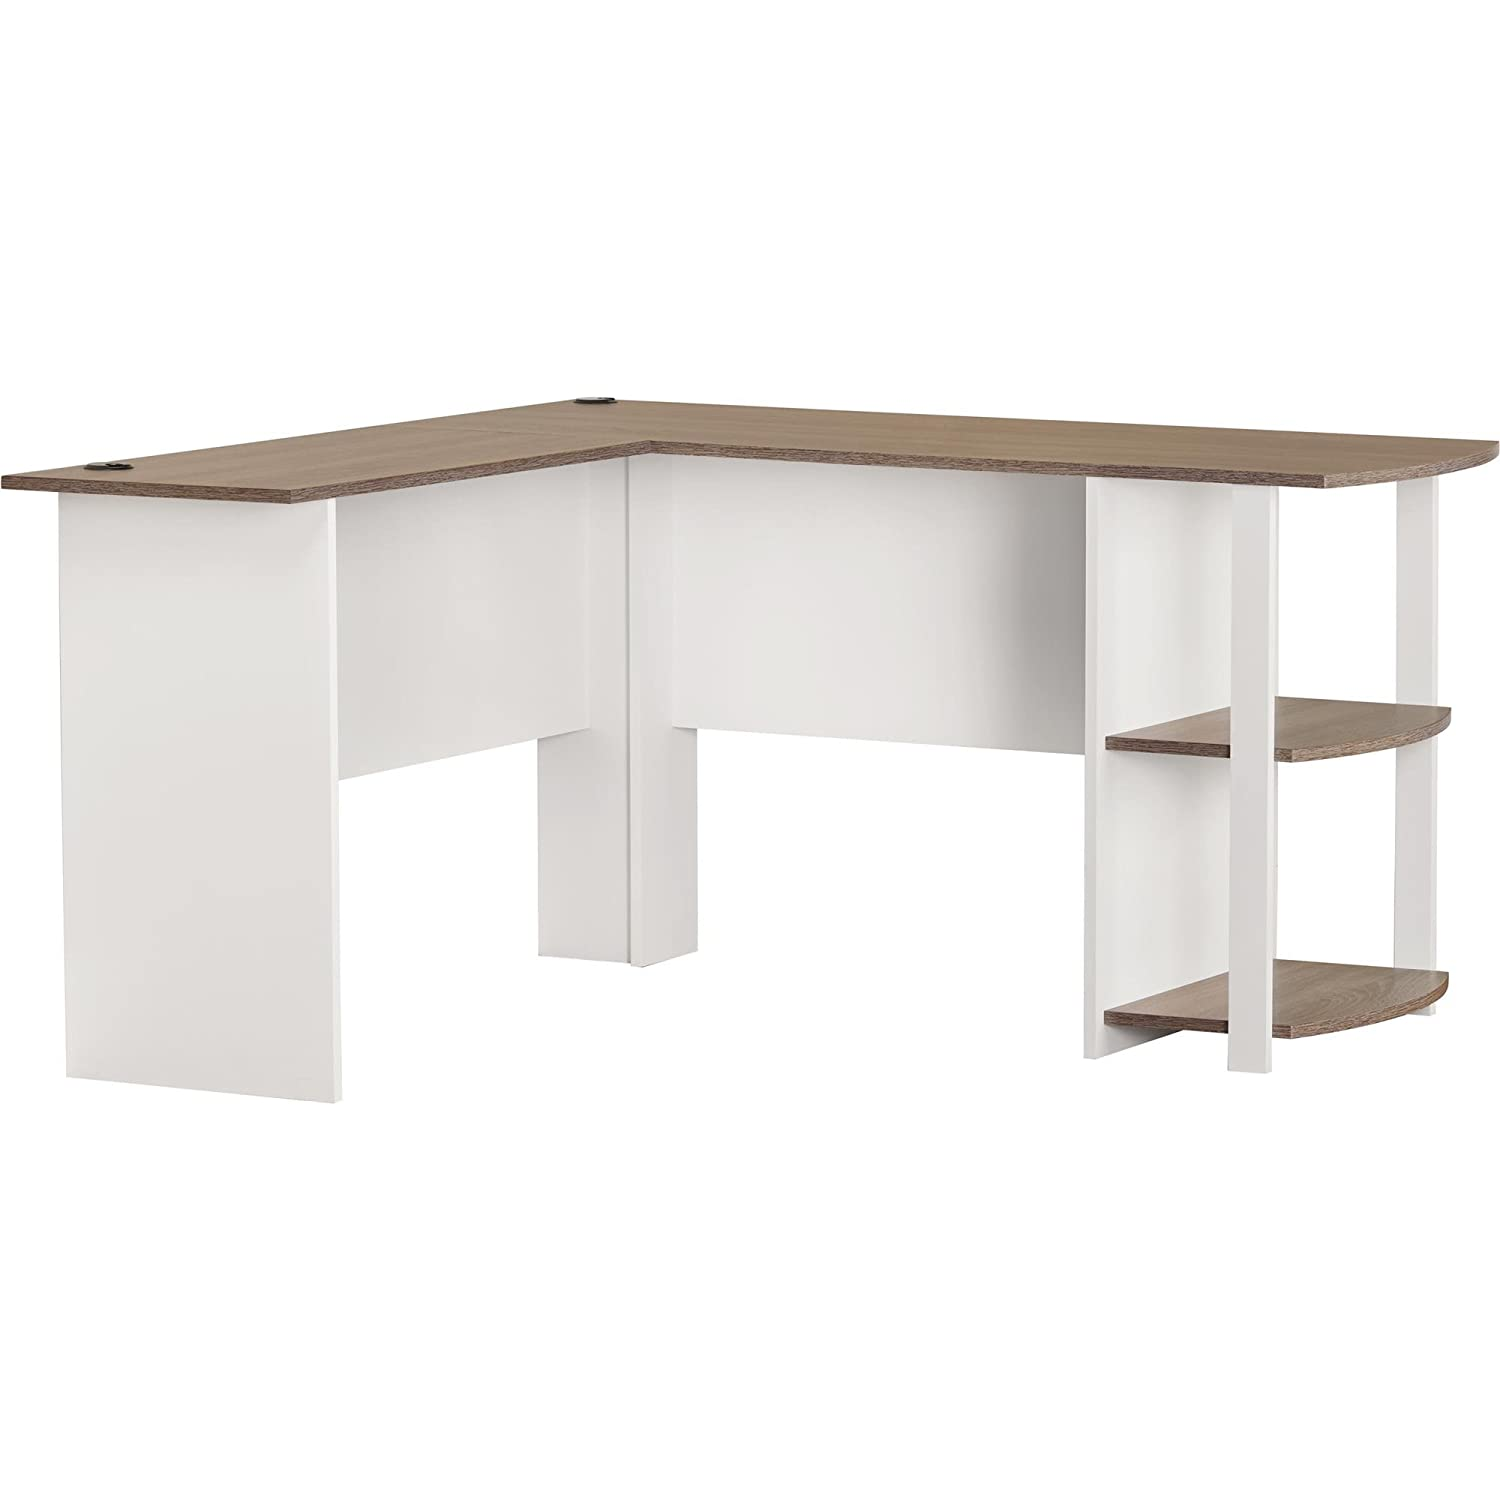 amazoncom ameriwood home dakota lshaped desk with bookshelves white sonoma oak kitchen u0026 dining